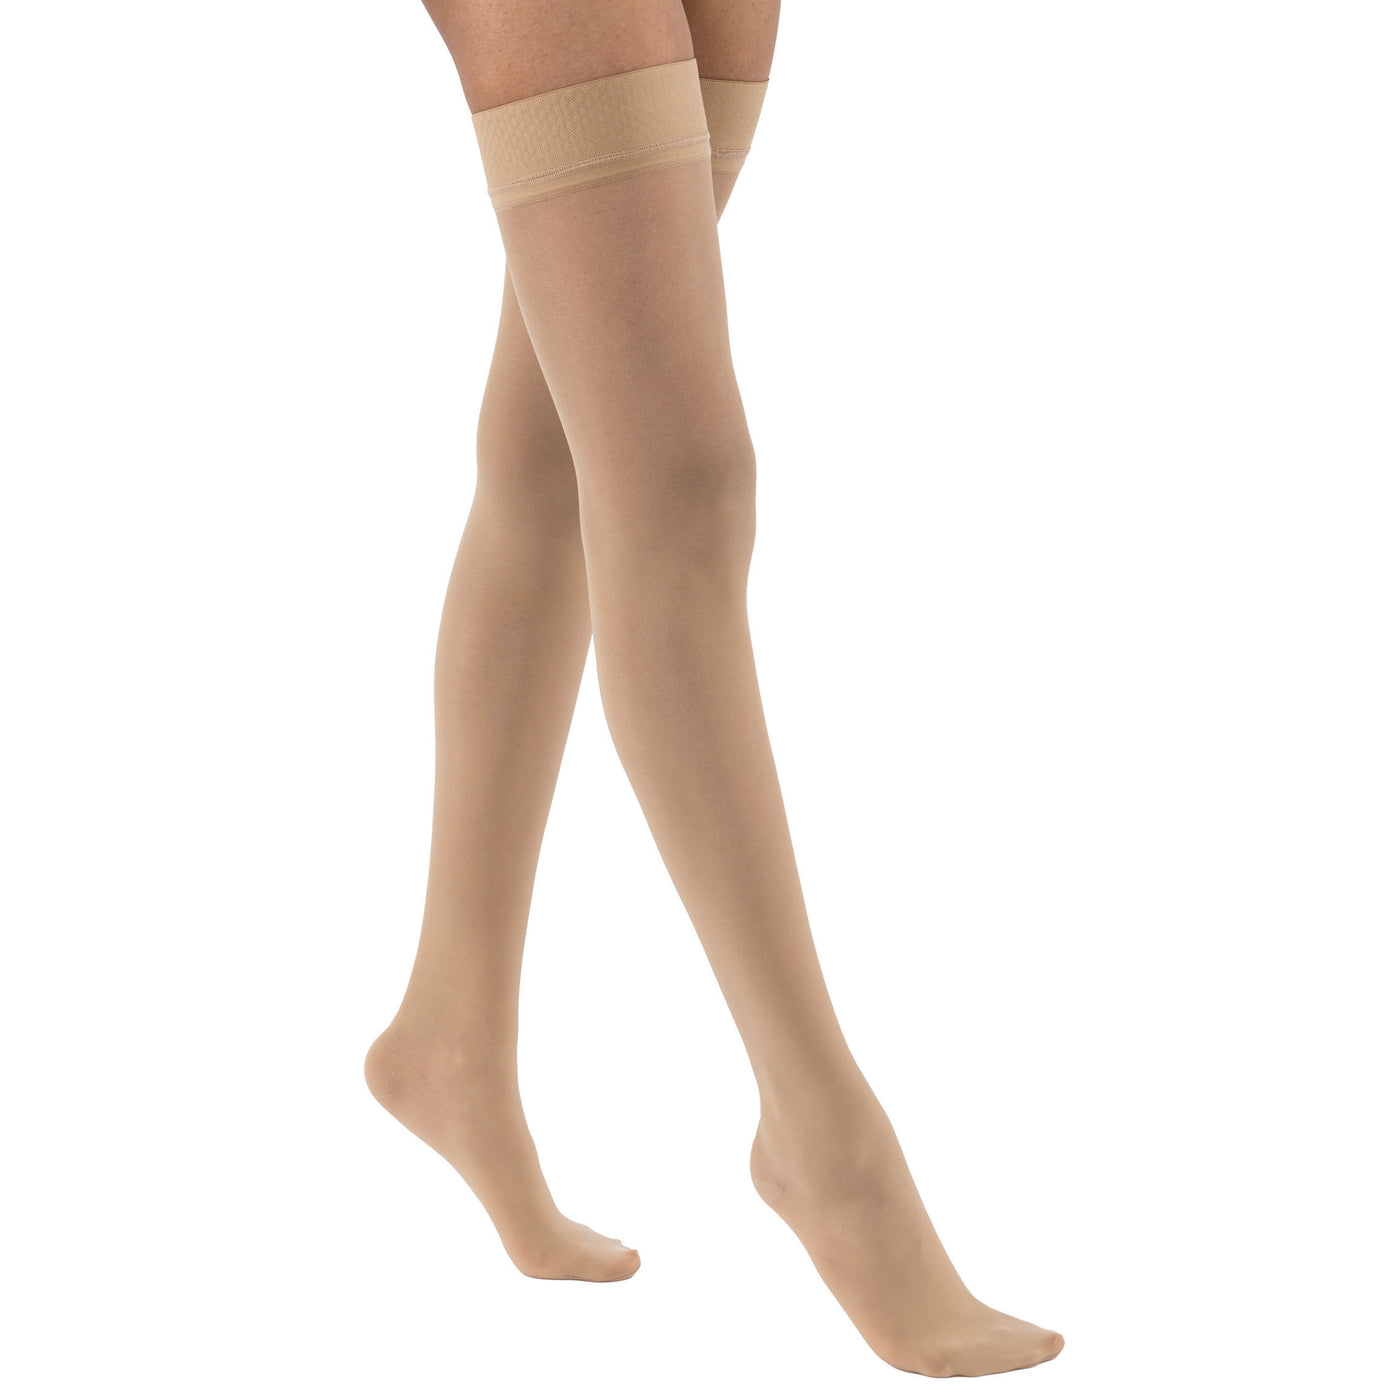 8093e9800 Home Jobst UltraSheer Thigh Highs 15-20mmHg - Silicone Dot Band. Hover to  zoom